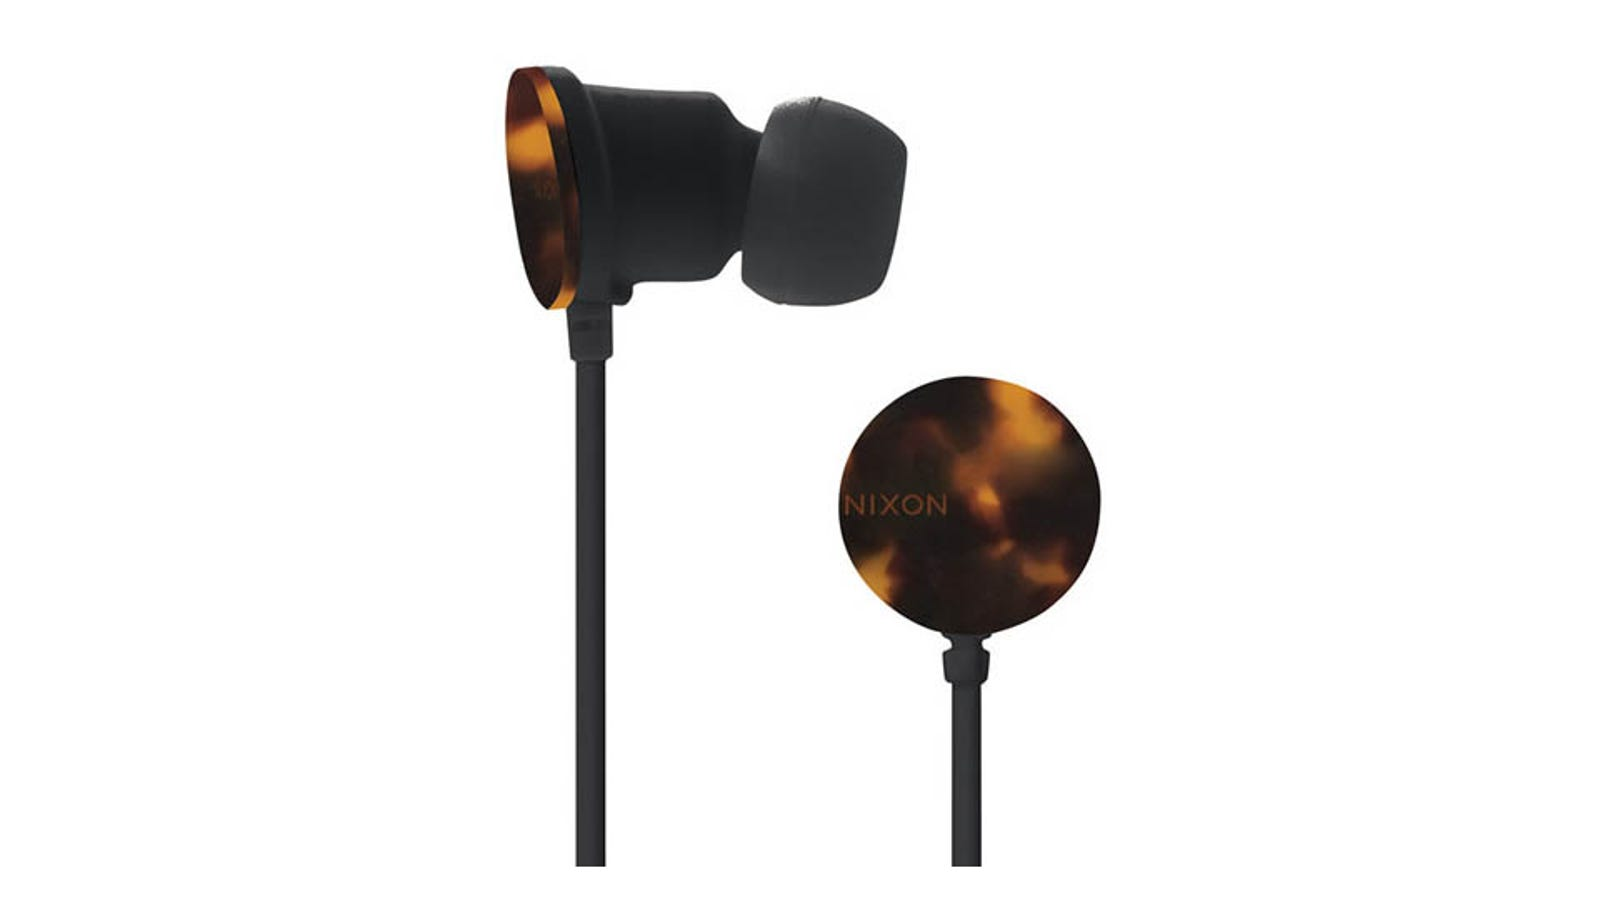 samsung earbuds refurbished - Nixon Offers Up Tortoise Shell Earbuds to Match Your Tortoise Shell Sunglasses